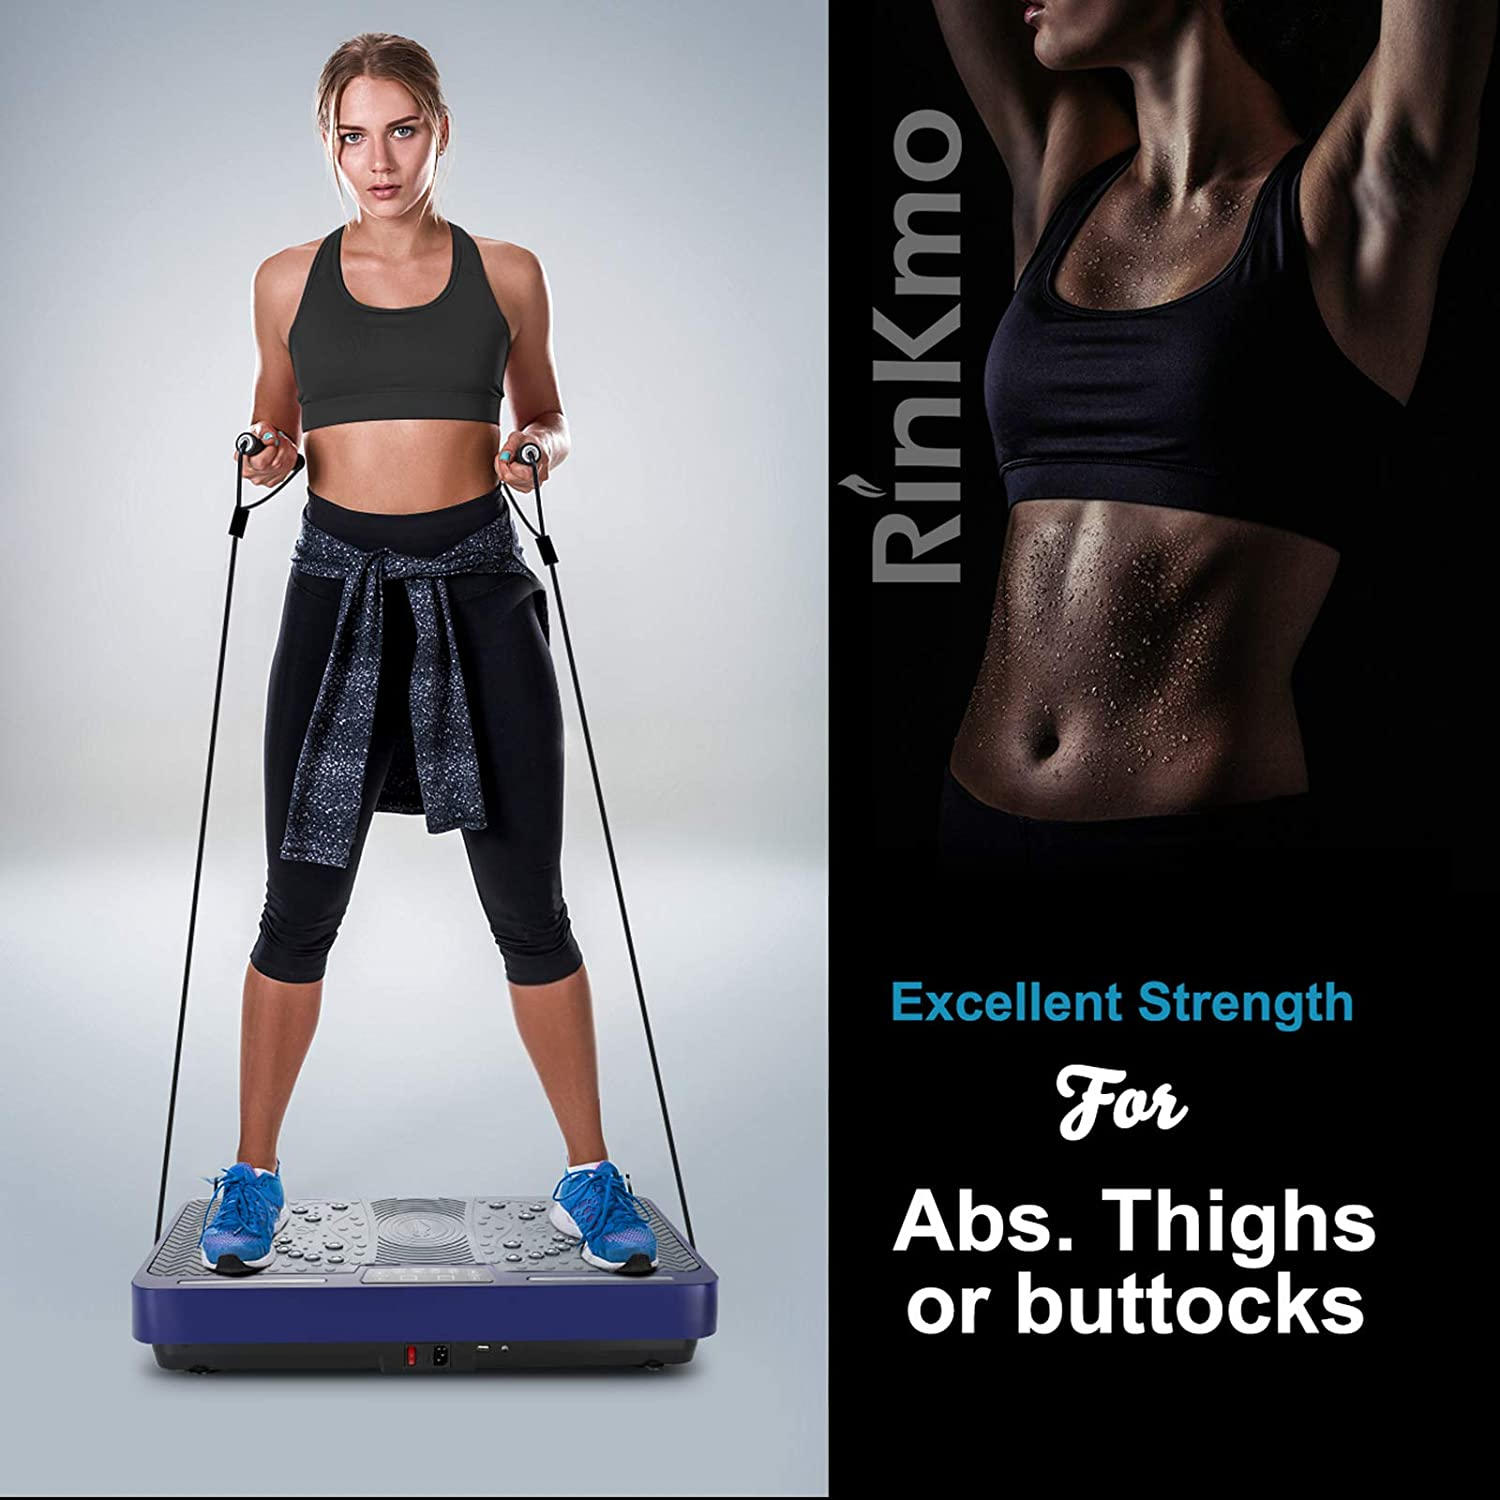 RINKMO Vibration Plate Exercise Machine Home Training Equipment for Weight Loss /& Toning